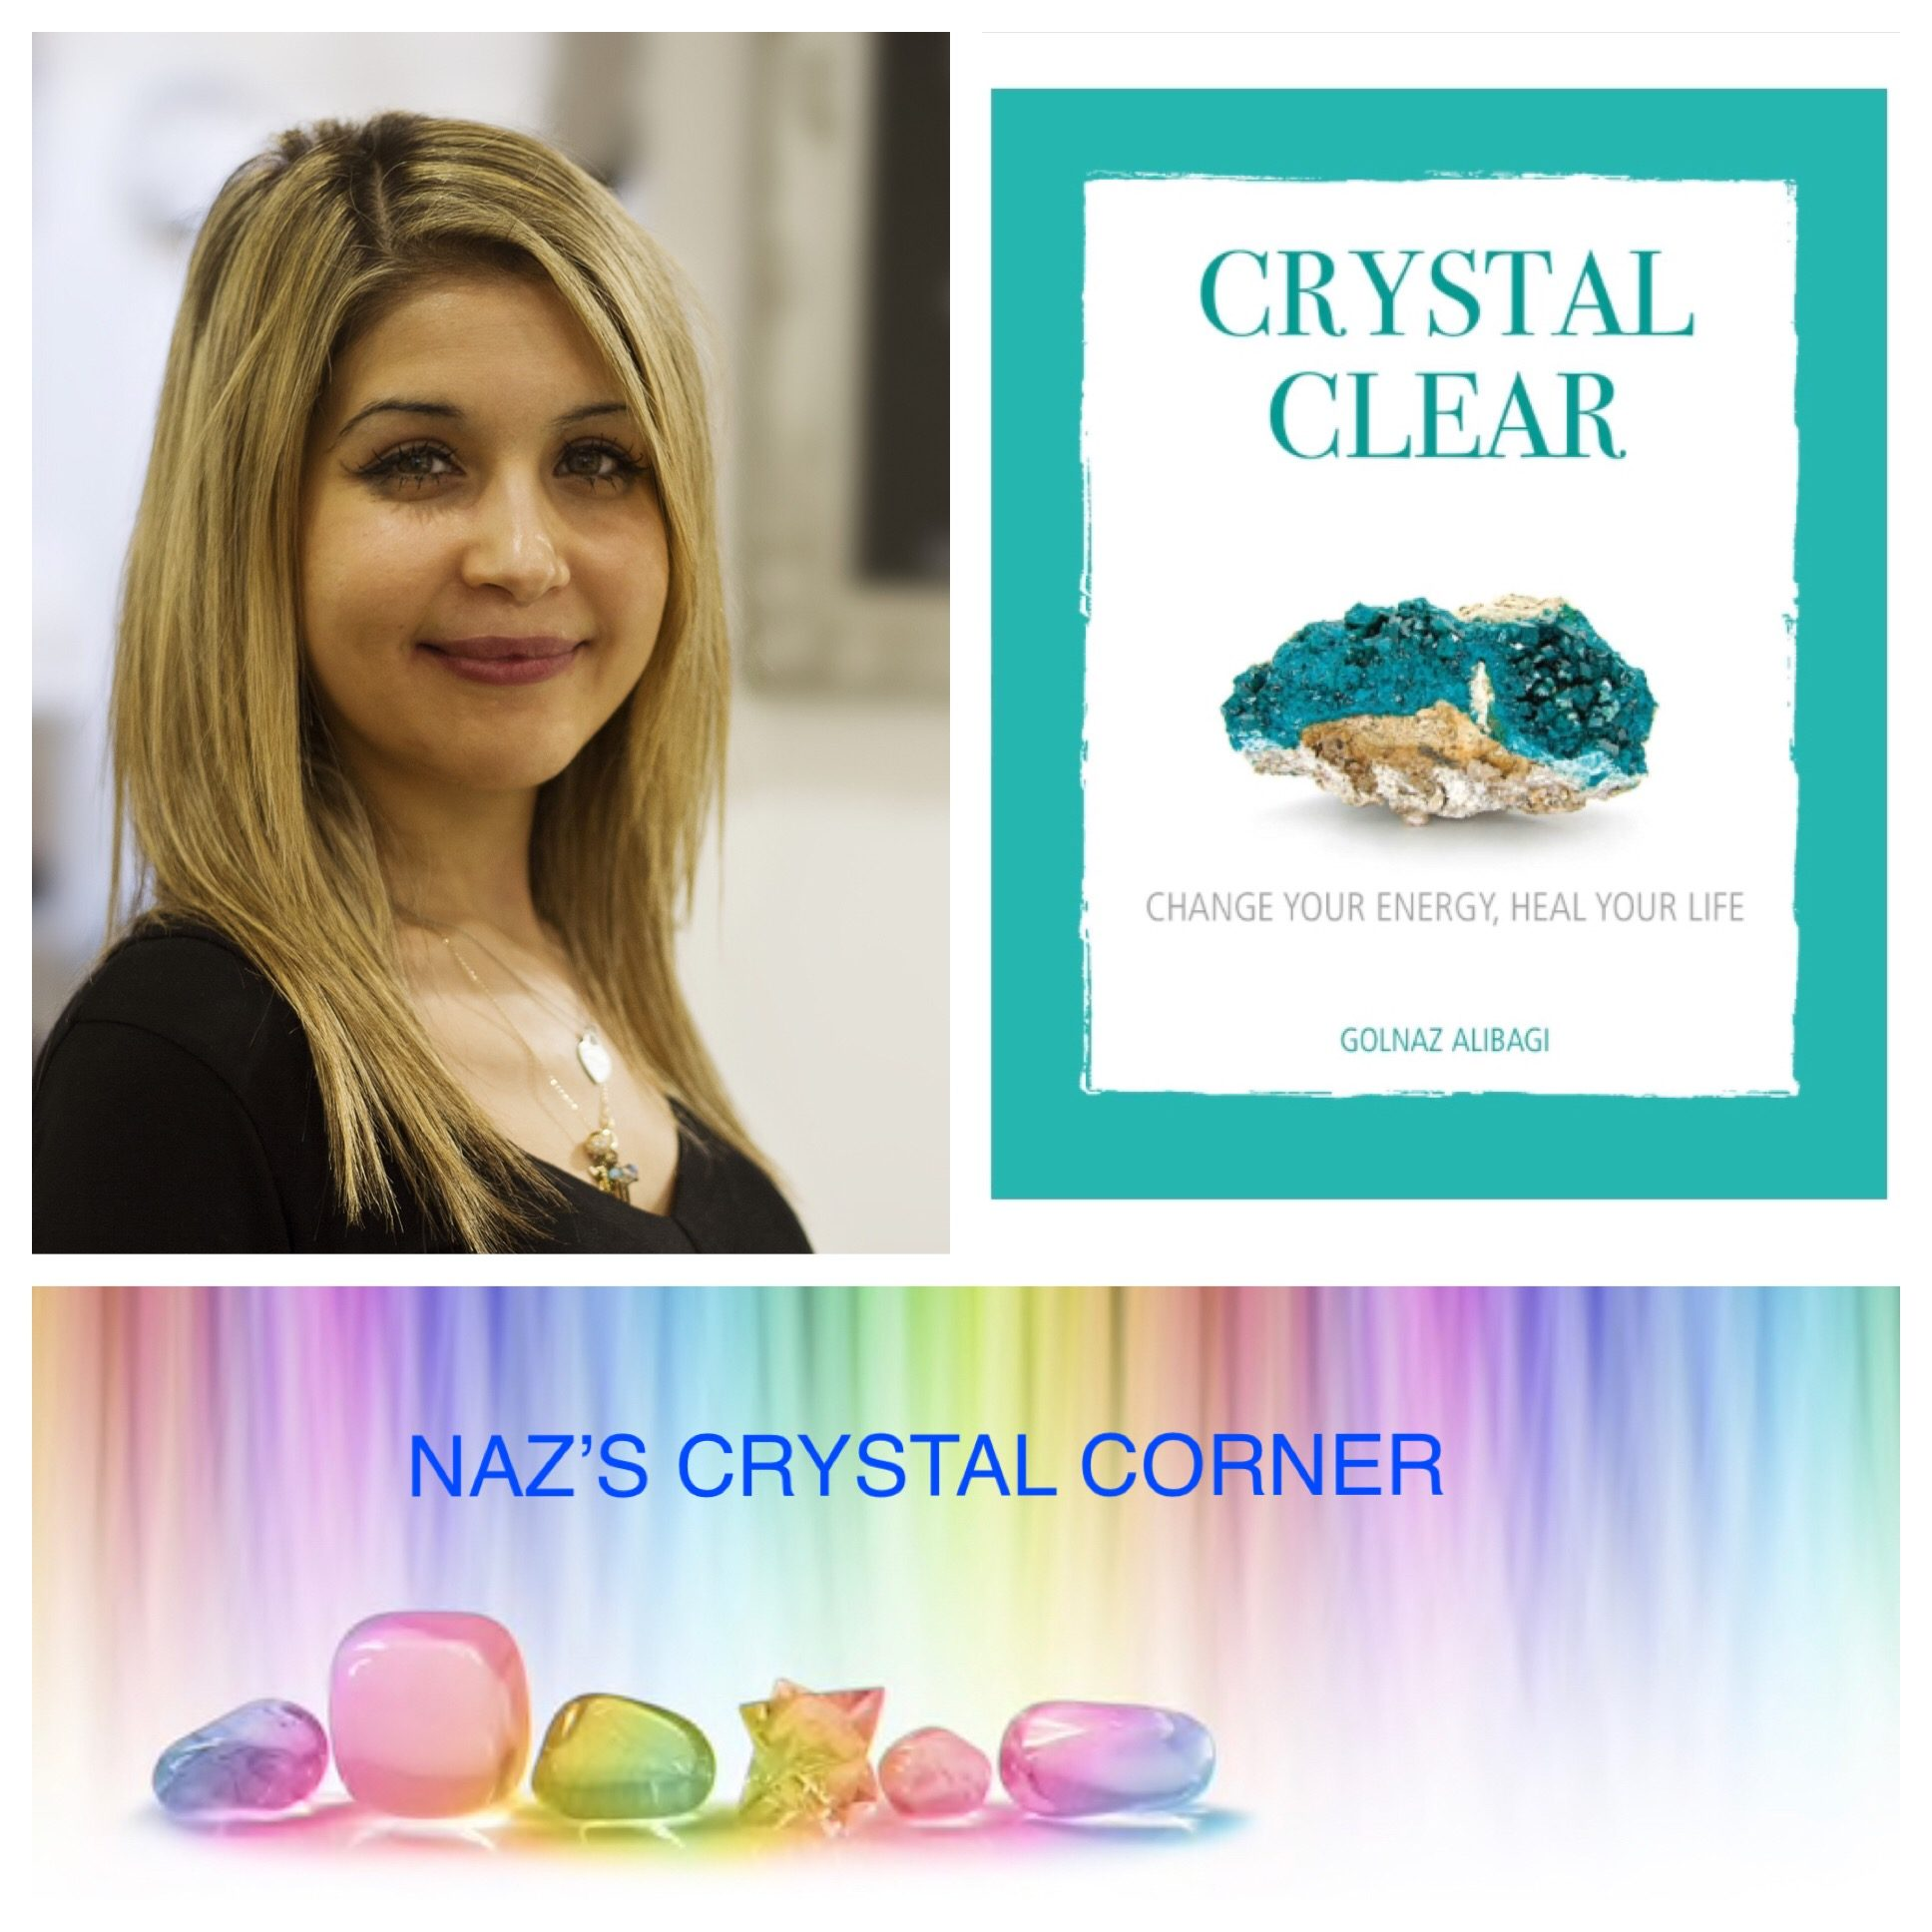 Naz's crystal horoscopes 28th April - 4th May 2019